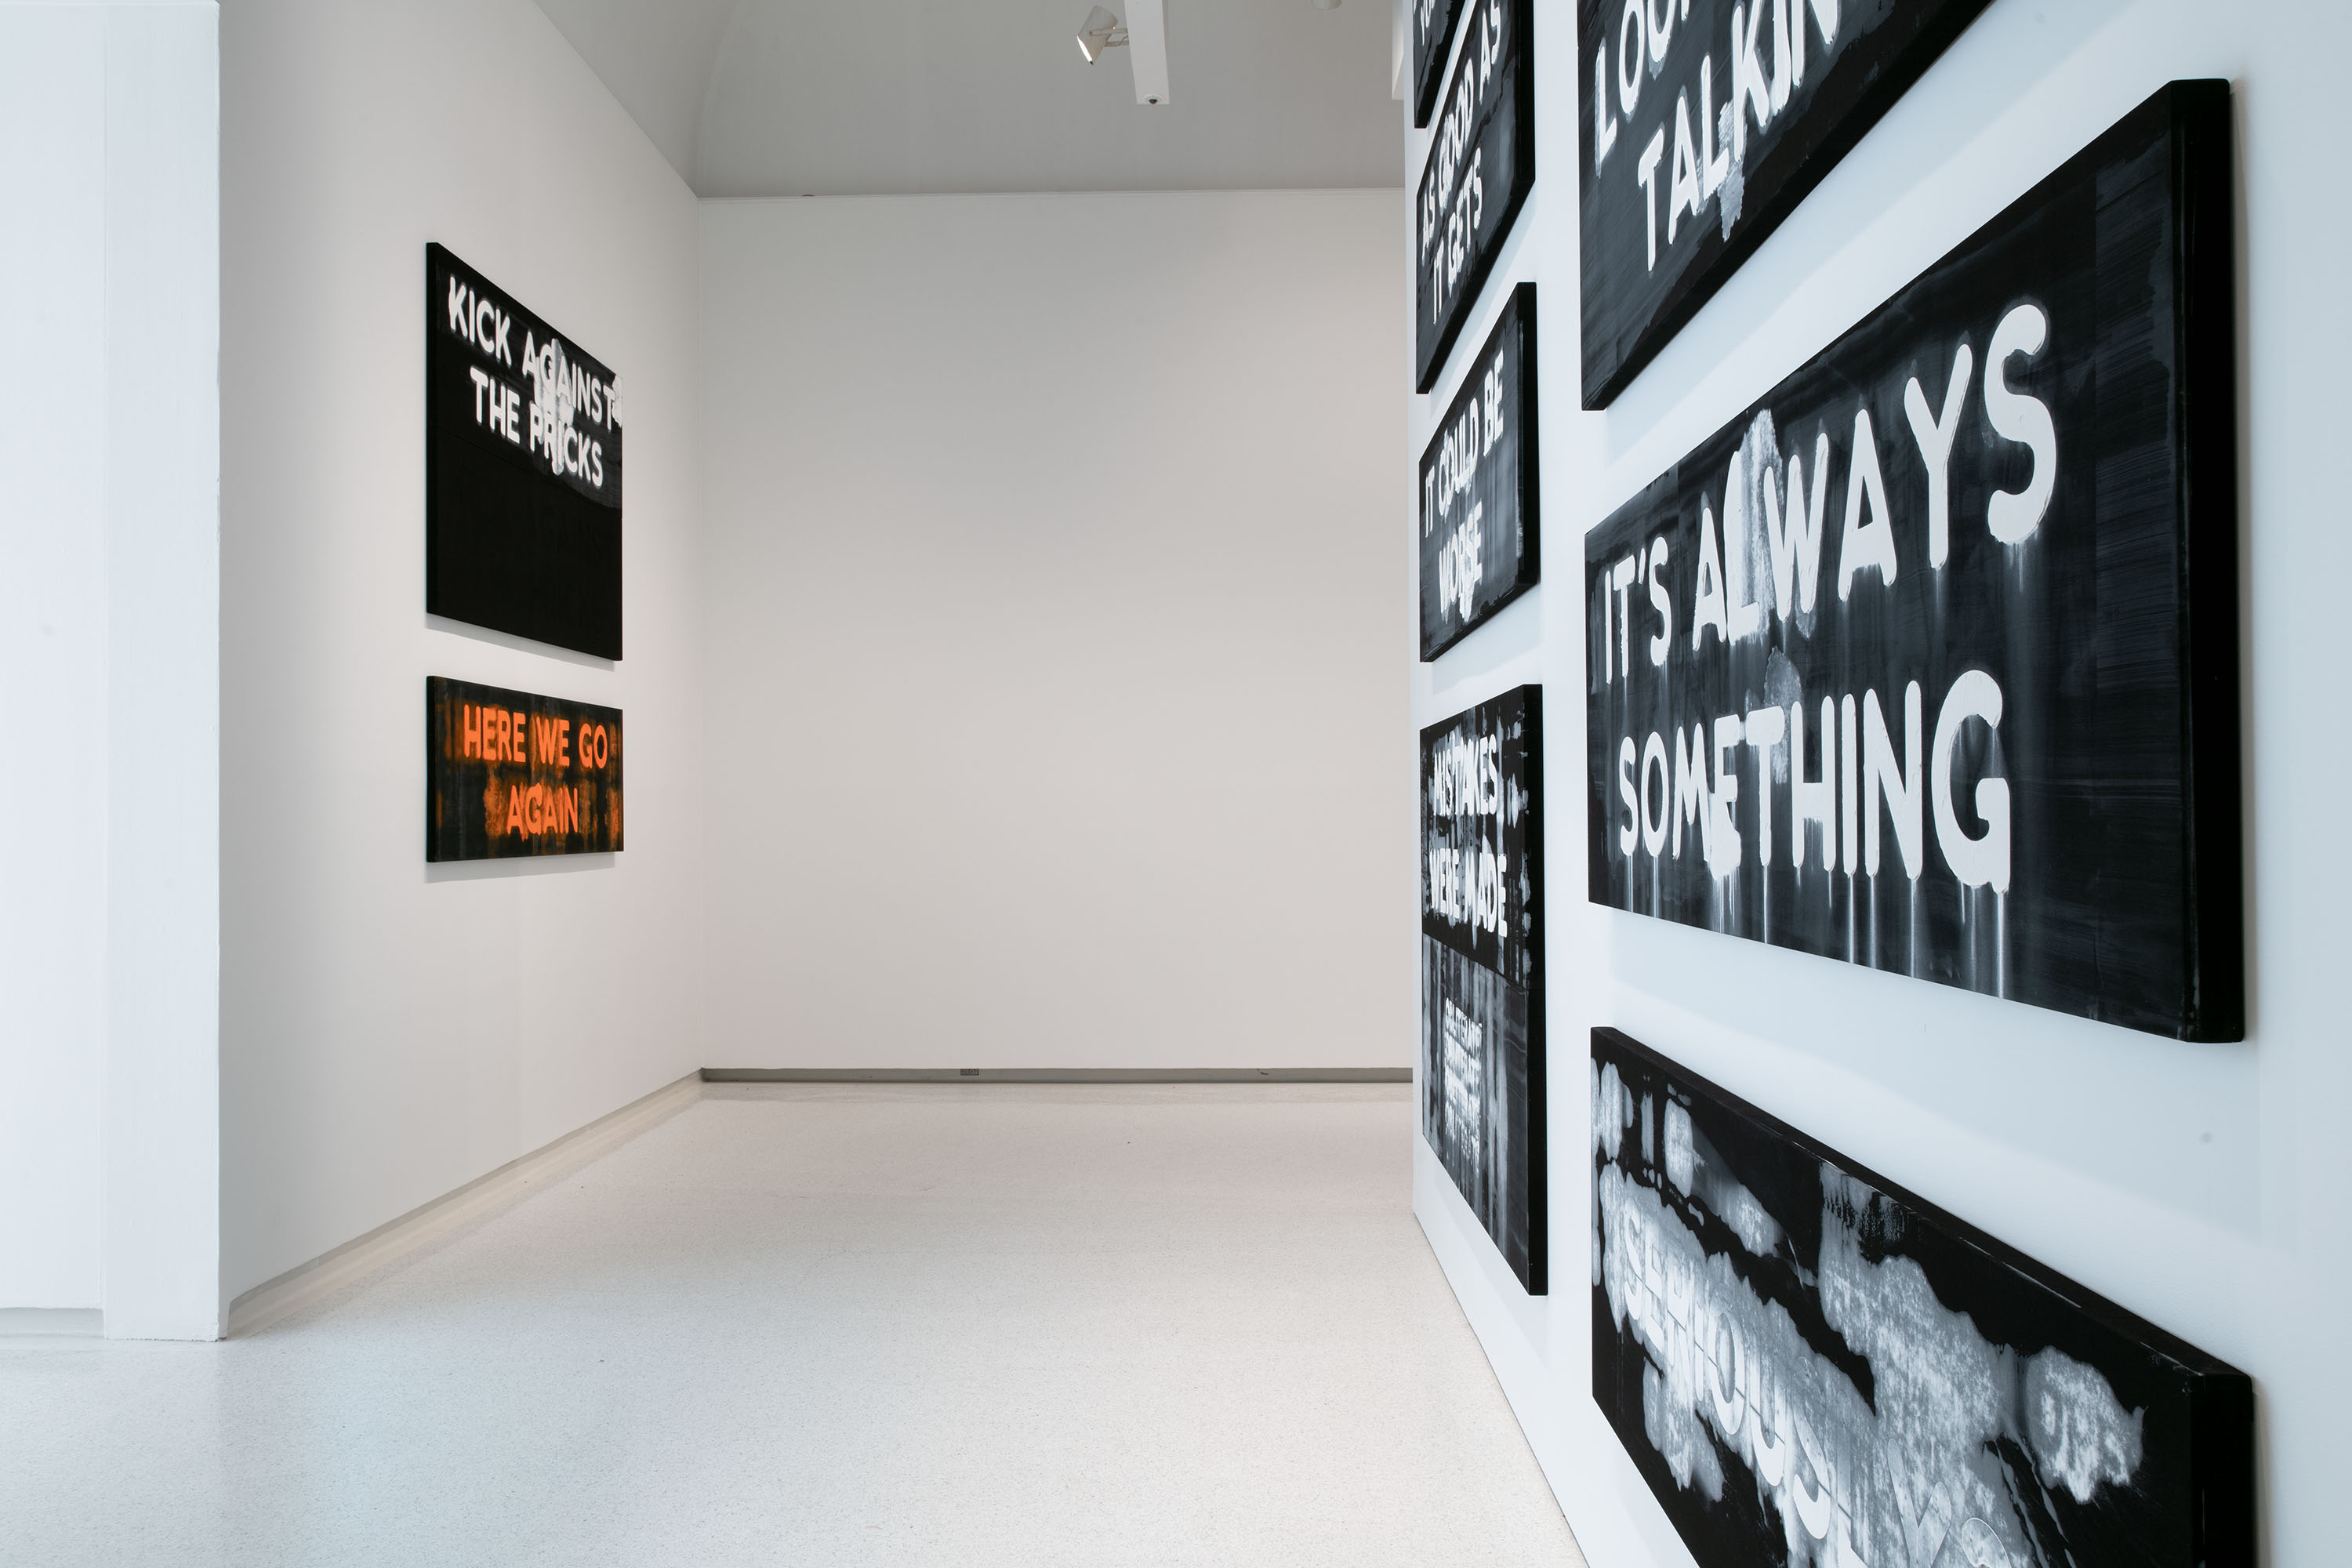 Tom Wolfe's 1975 book 'The Painted Word' criticized modern art for being too theory-driven. Artist Mel Bochner responds with painted sentences. Just out of view: 'LOOK WHO'S TALKING.' (photo by Brian Conley, courtesy of the artist and Peter Freeman Inc.)